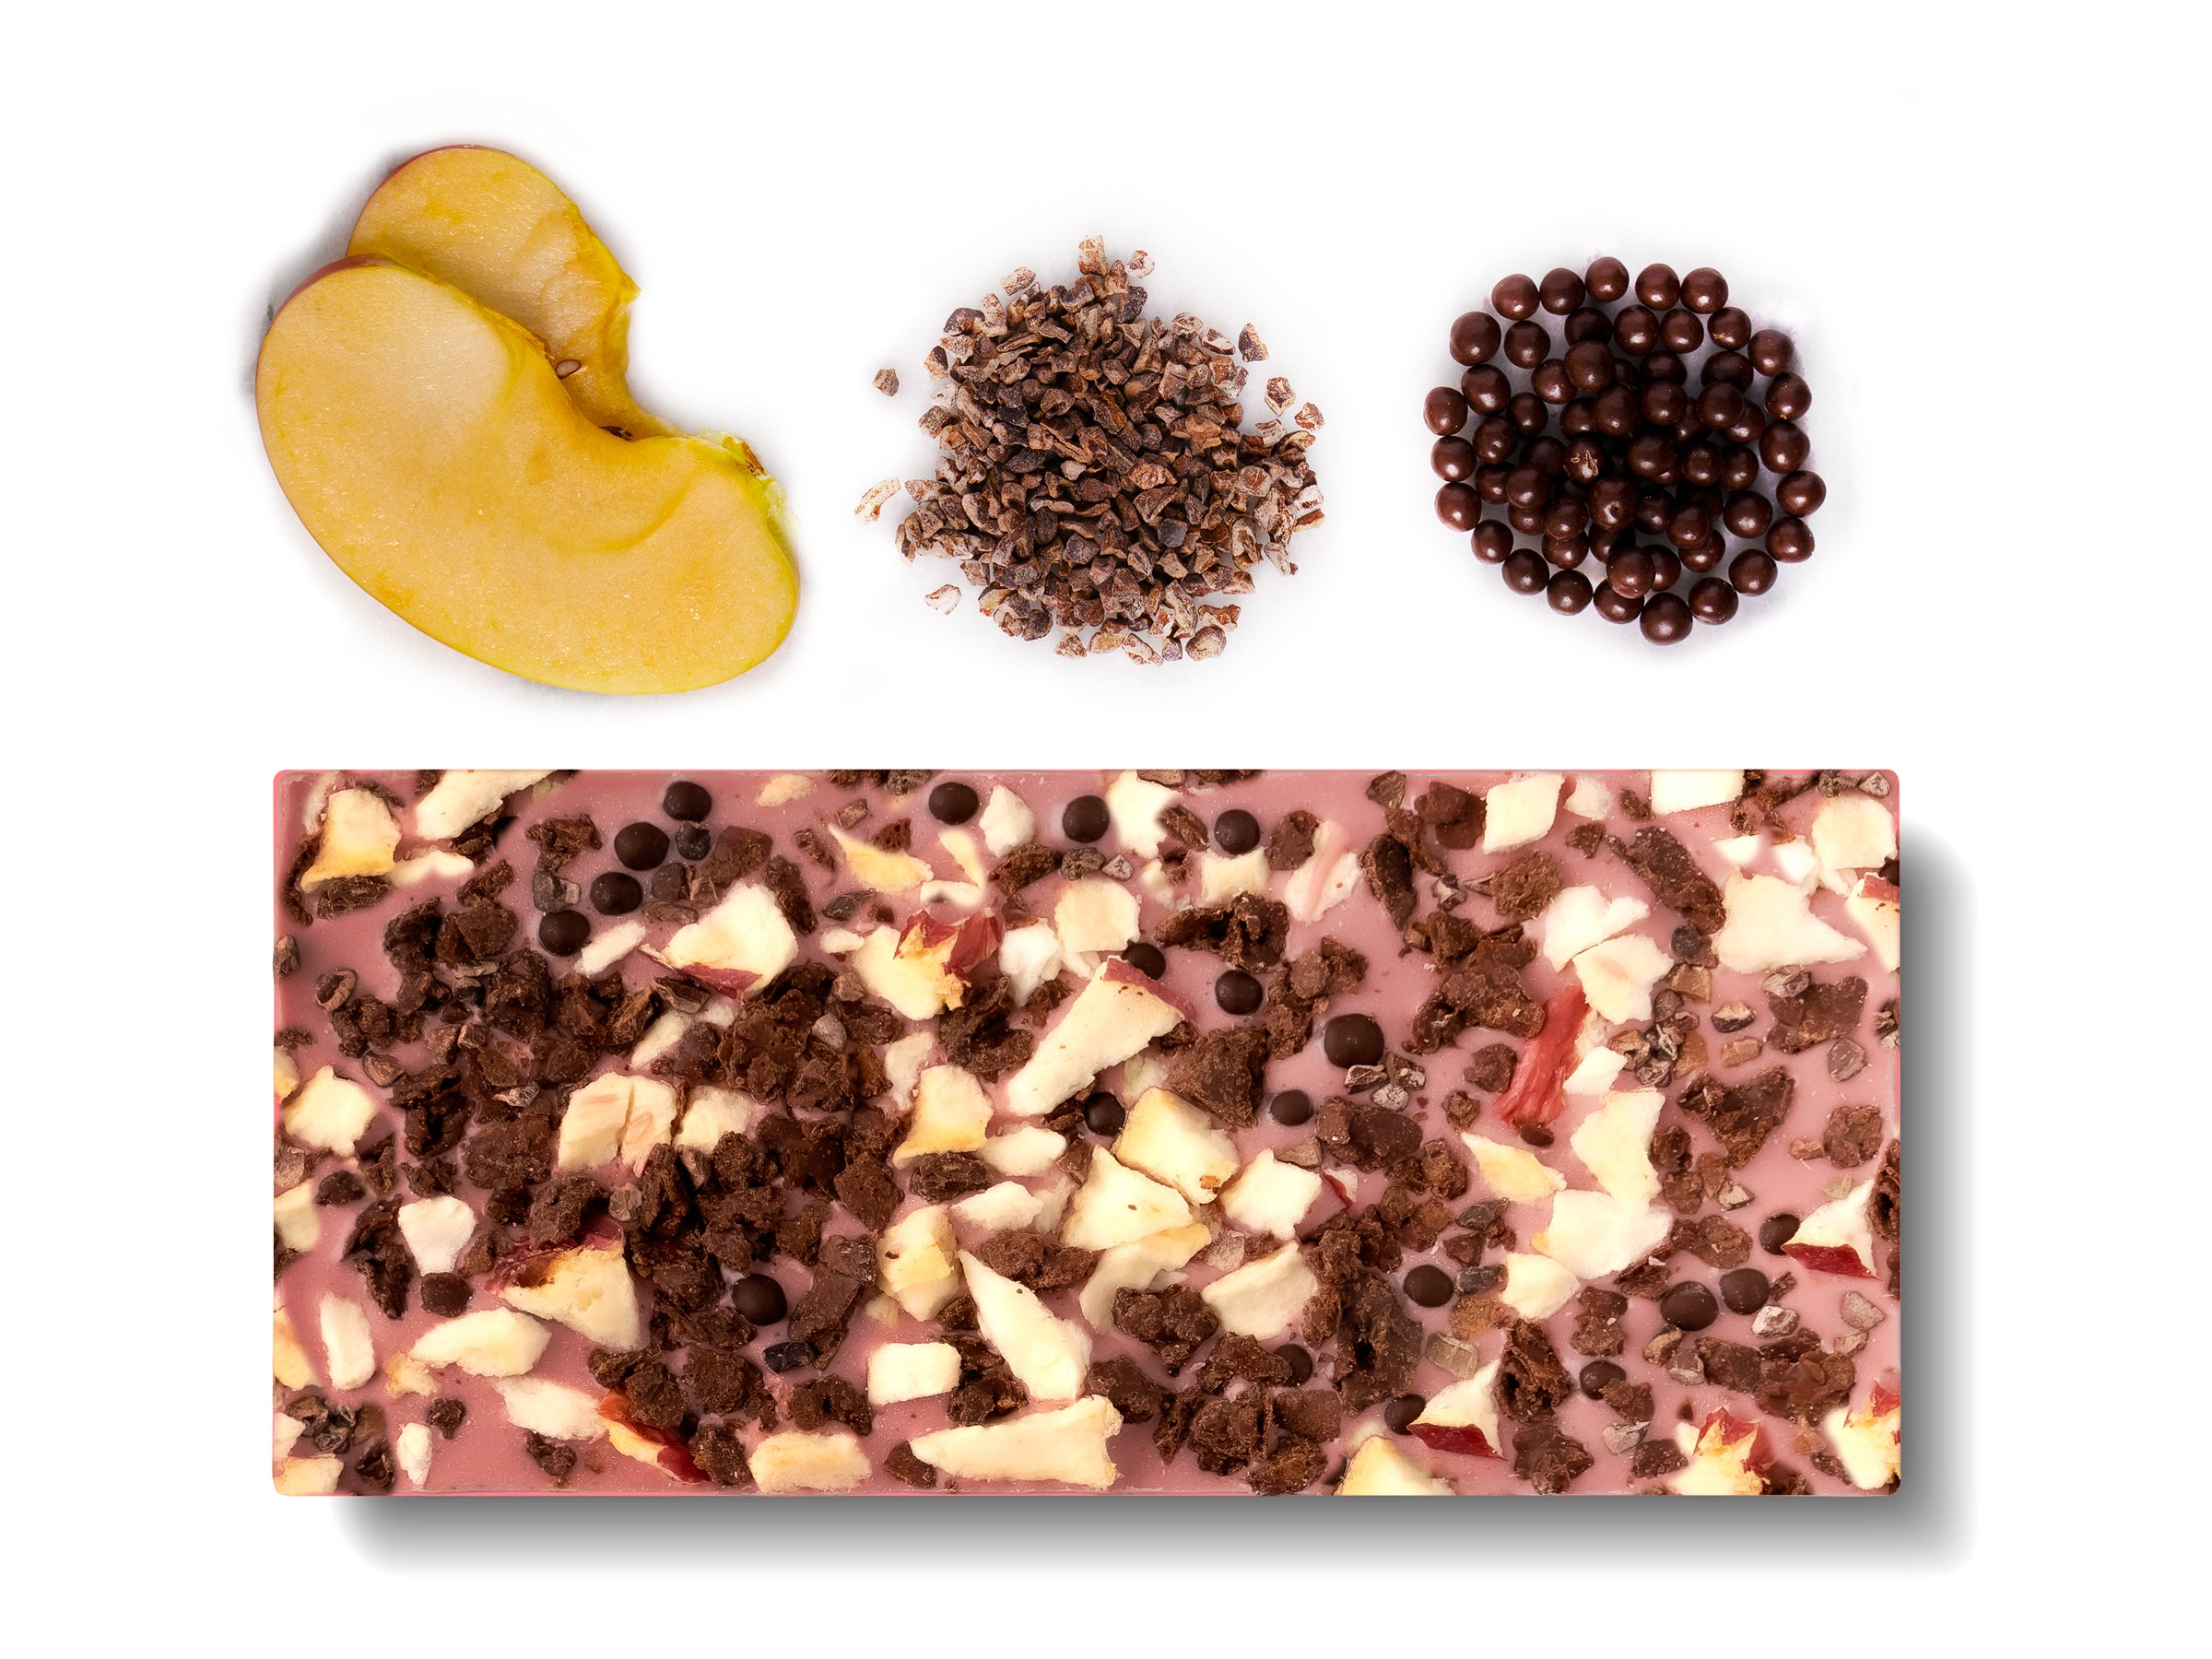 Ruby Chocolate - New York (Fuji Apple & Dark Chocolate Pearls) - Flair Chocolatier